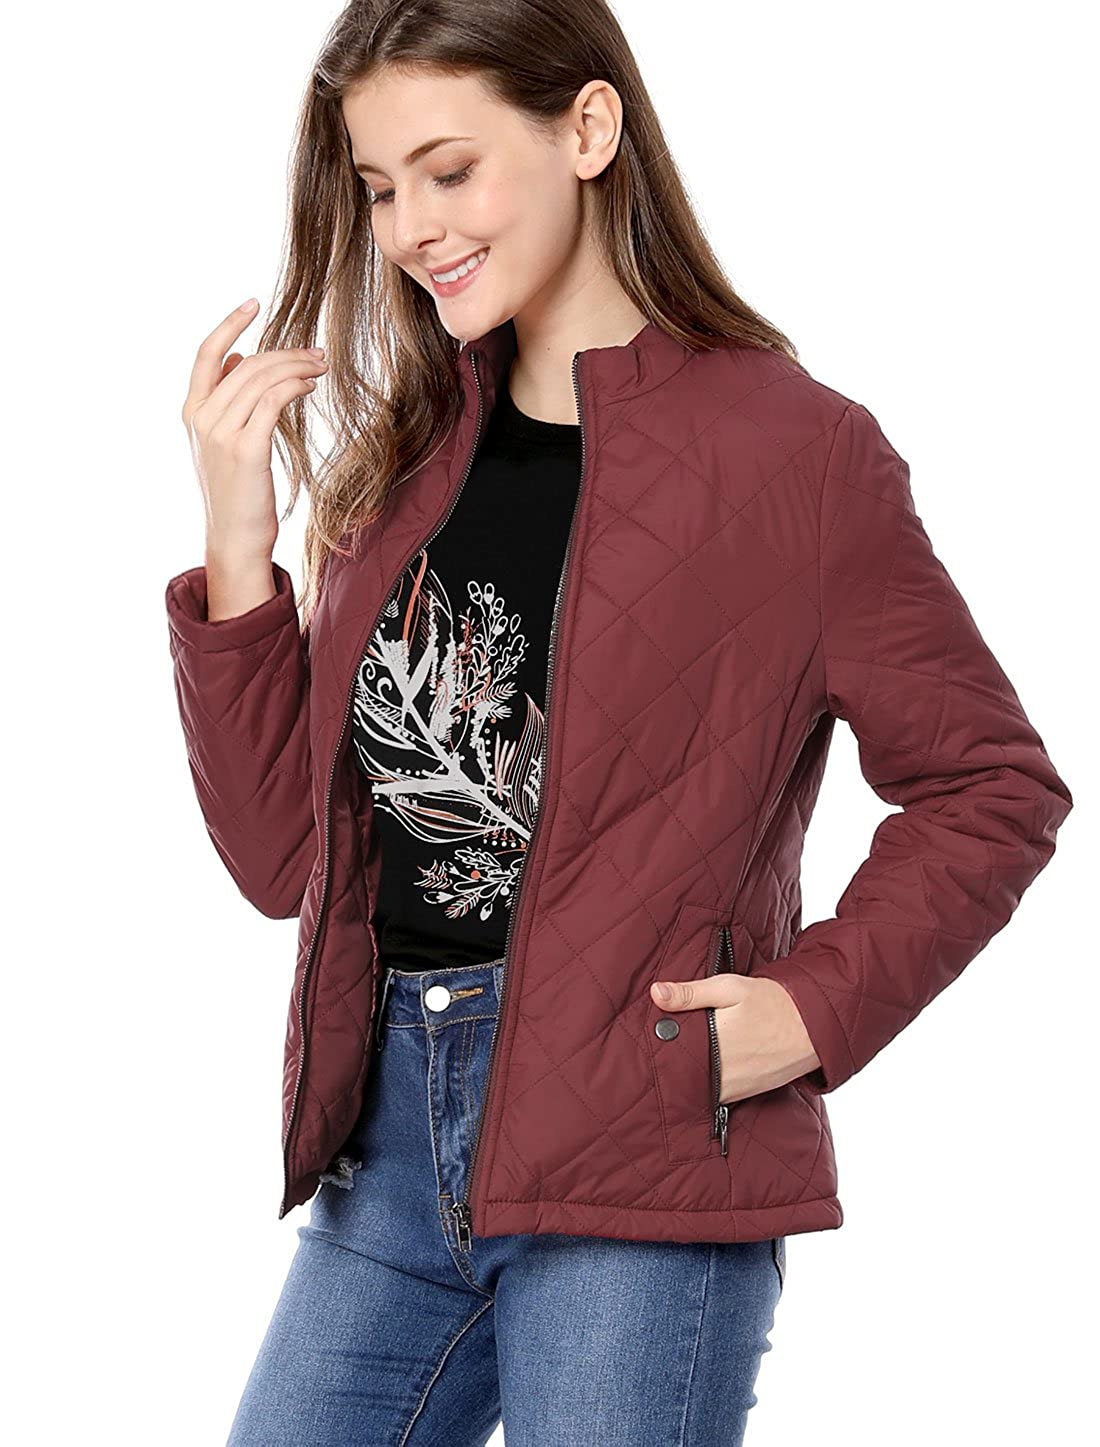 Allegra K Women's Long Sleeves Zippered Pockets Stand Collar Quilted Jacket g16072900ux0024